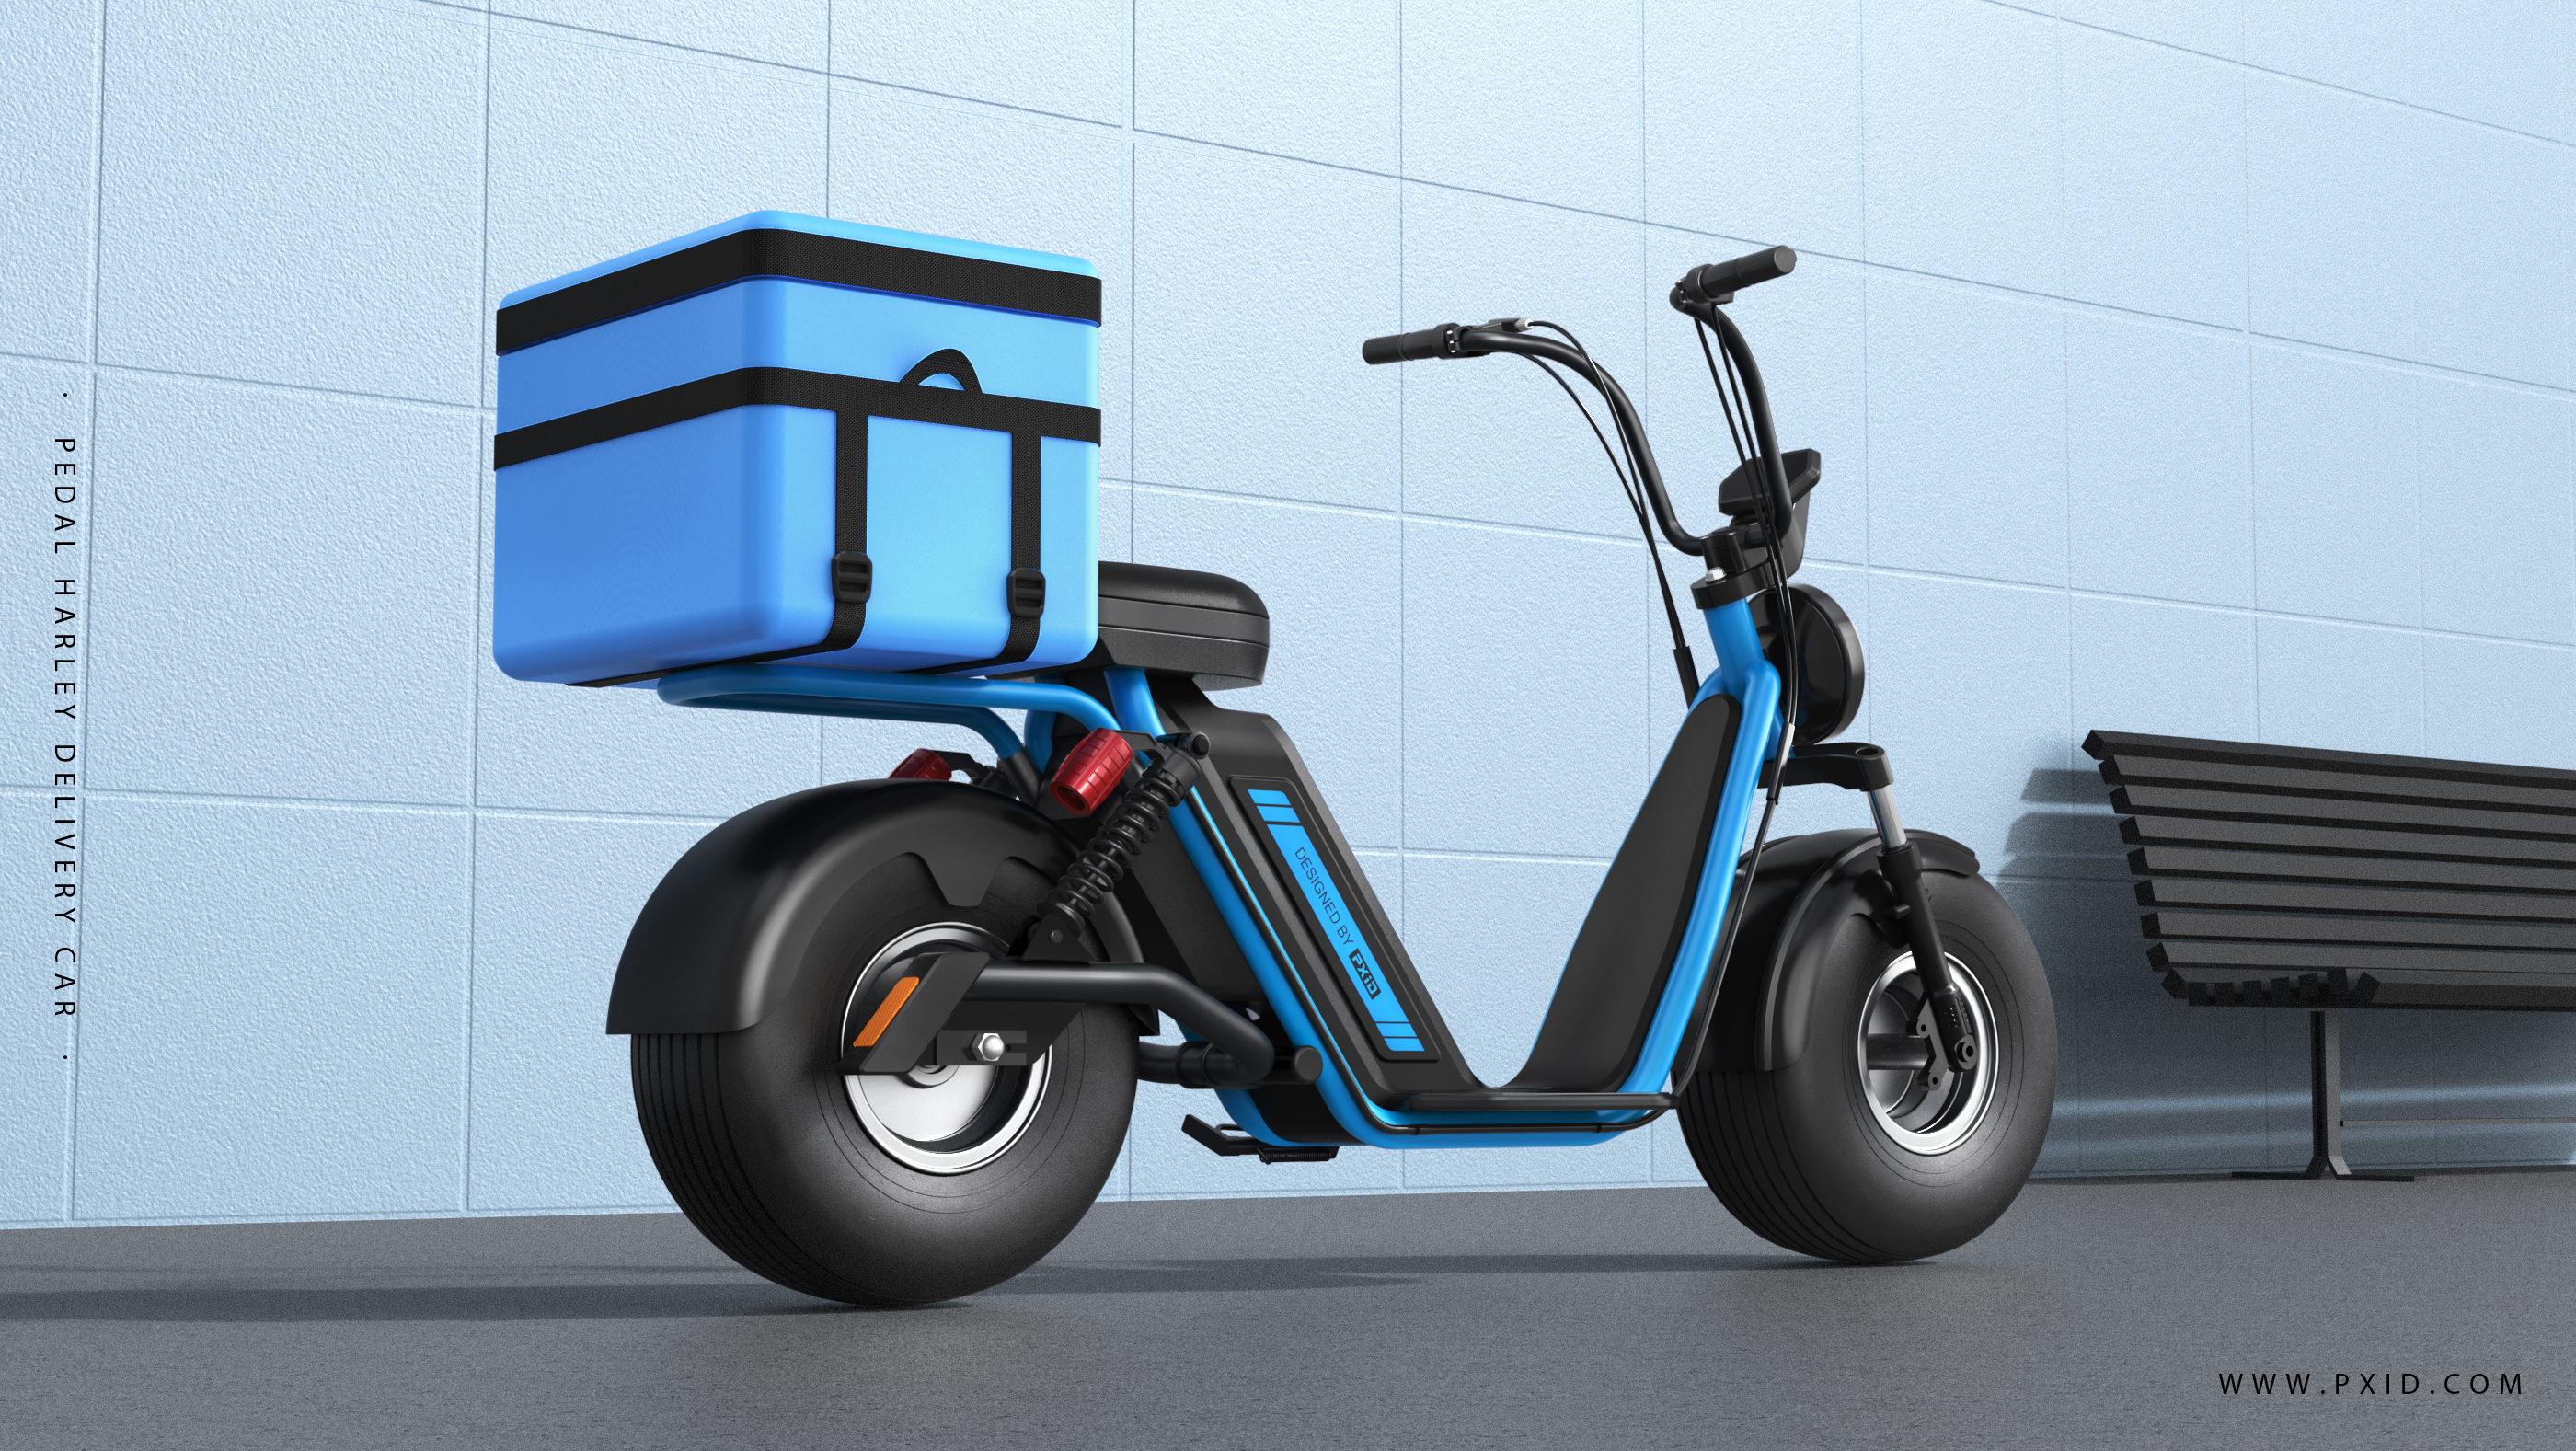 Pedal Harley electric car design-takeaway car